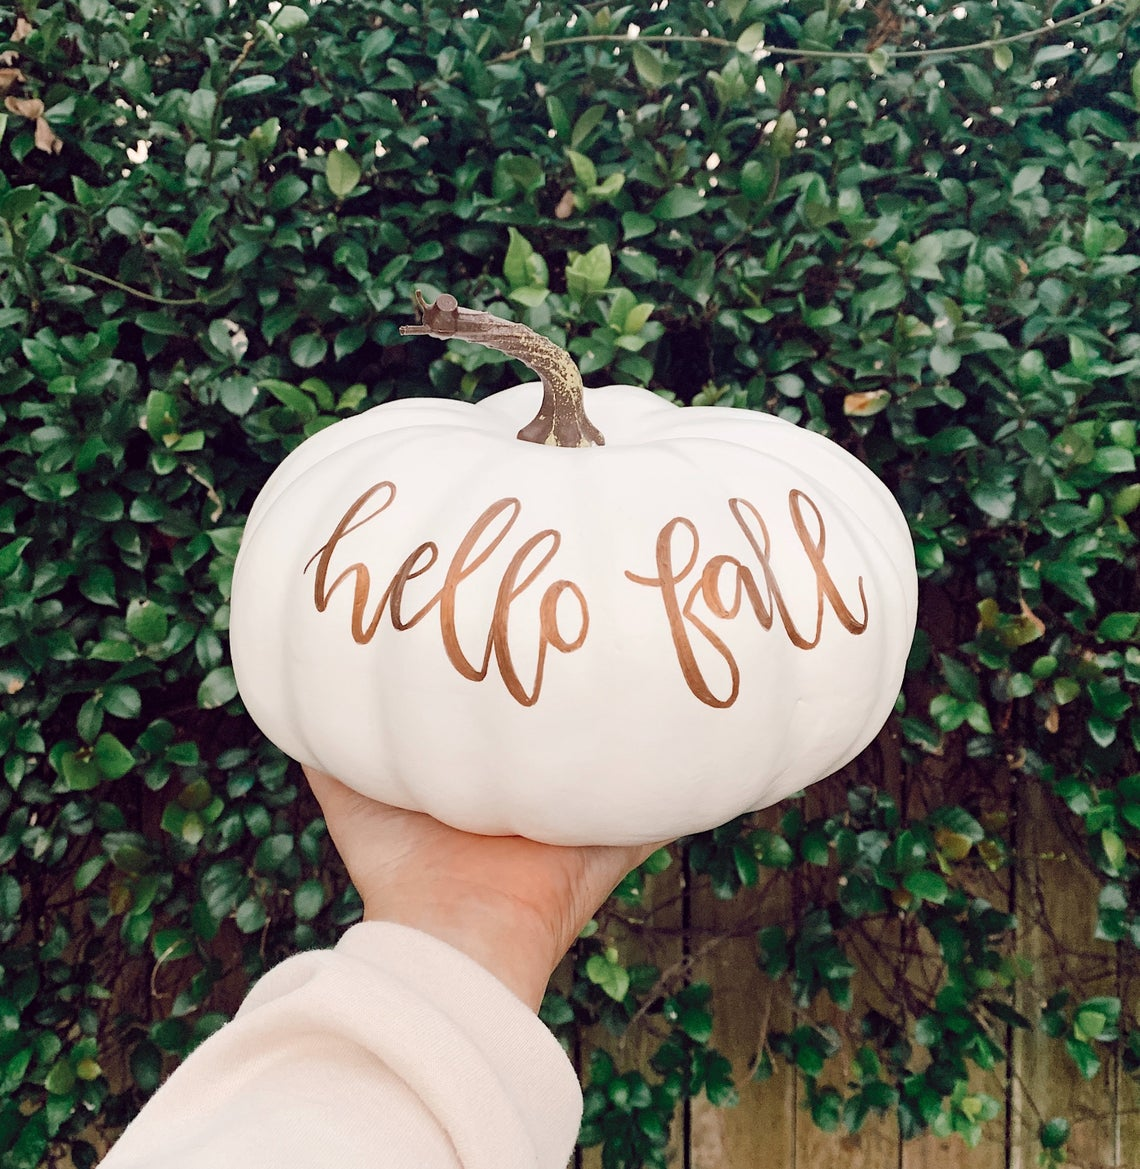 Personalized Pumpkin, Custom Pumpkin, Fall Decor, Large Pumpkin, White Pumpkin, Seasonal, Halloween Decor, Porch Pumpkin, Lettered Pumpkin